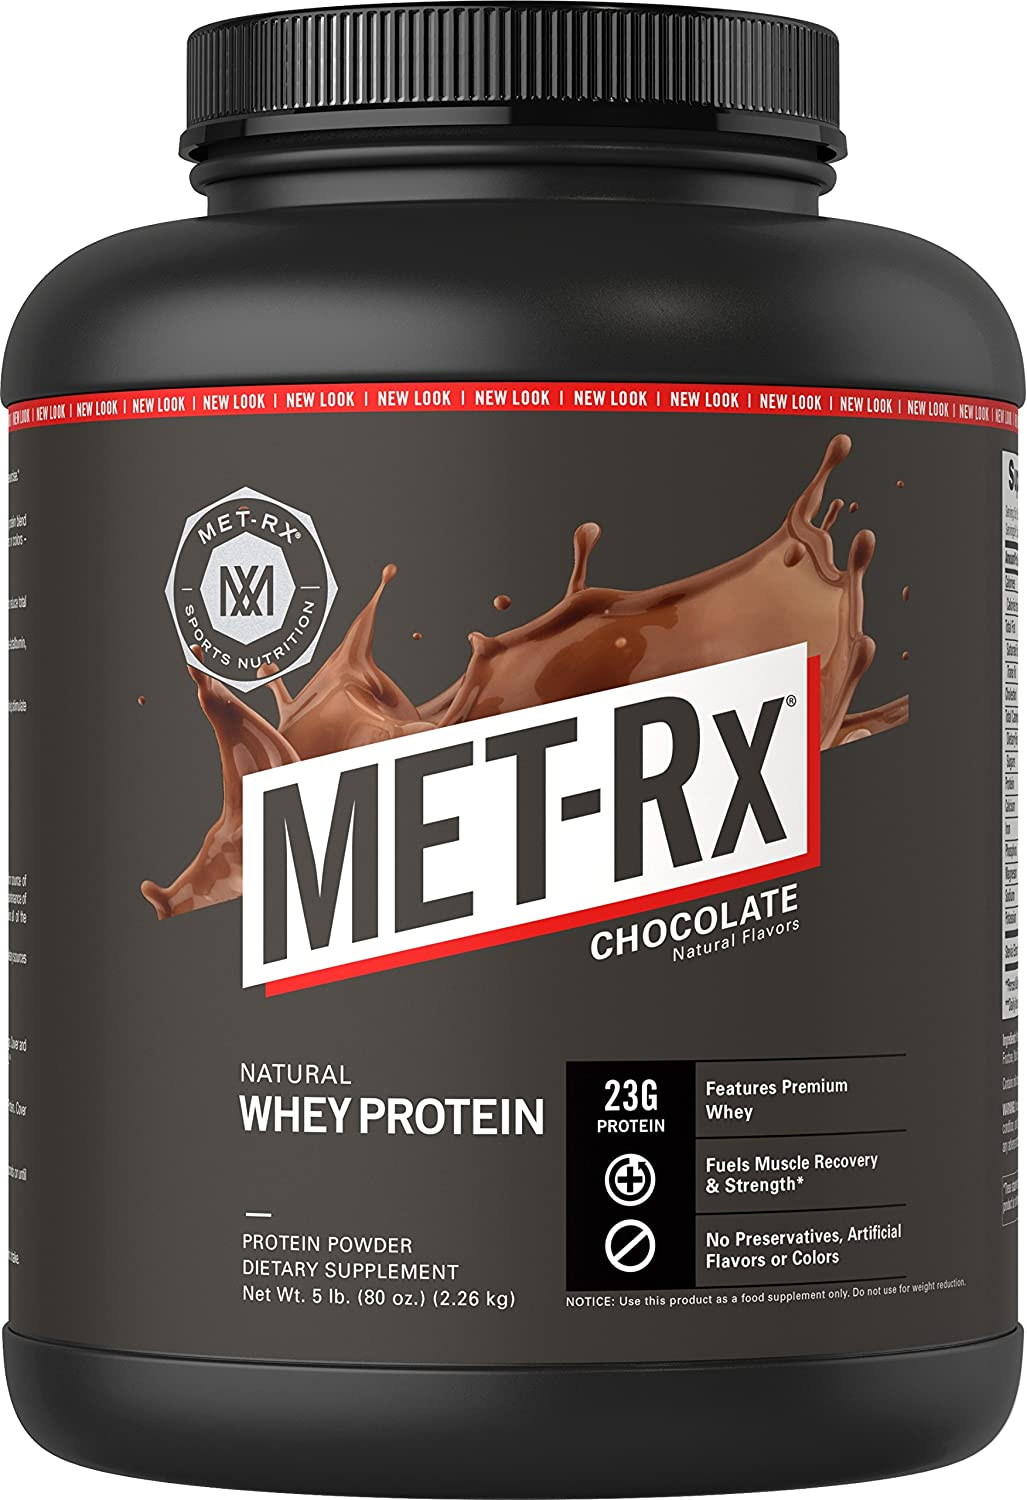 Best Whey Protein 2020.Top 20 Best Whey Protein For Building Muscles 2019 2020 On